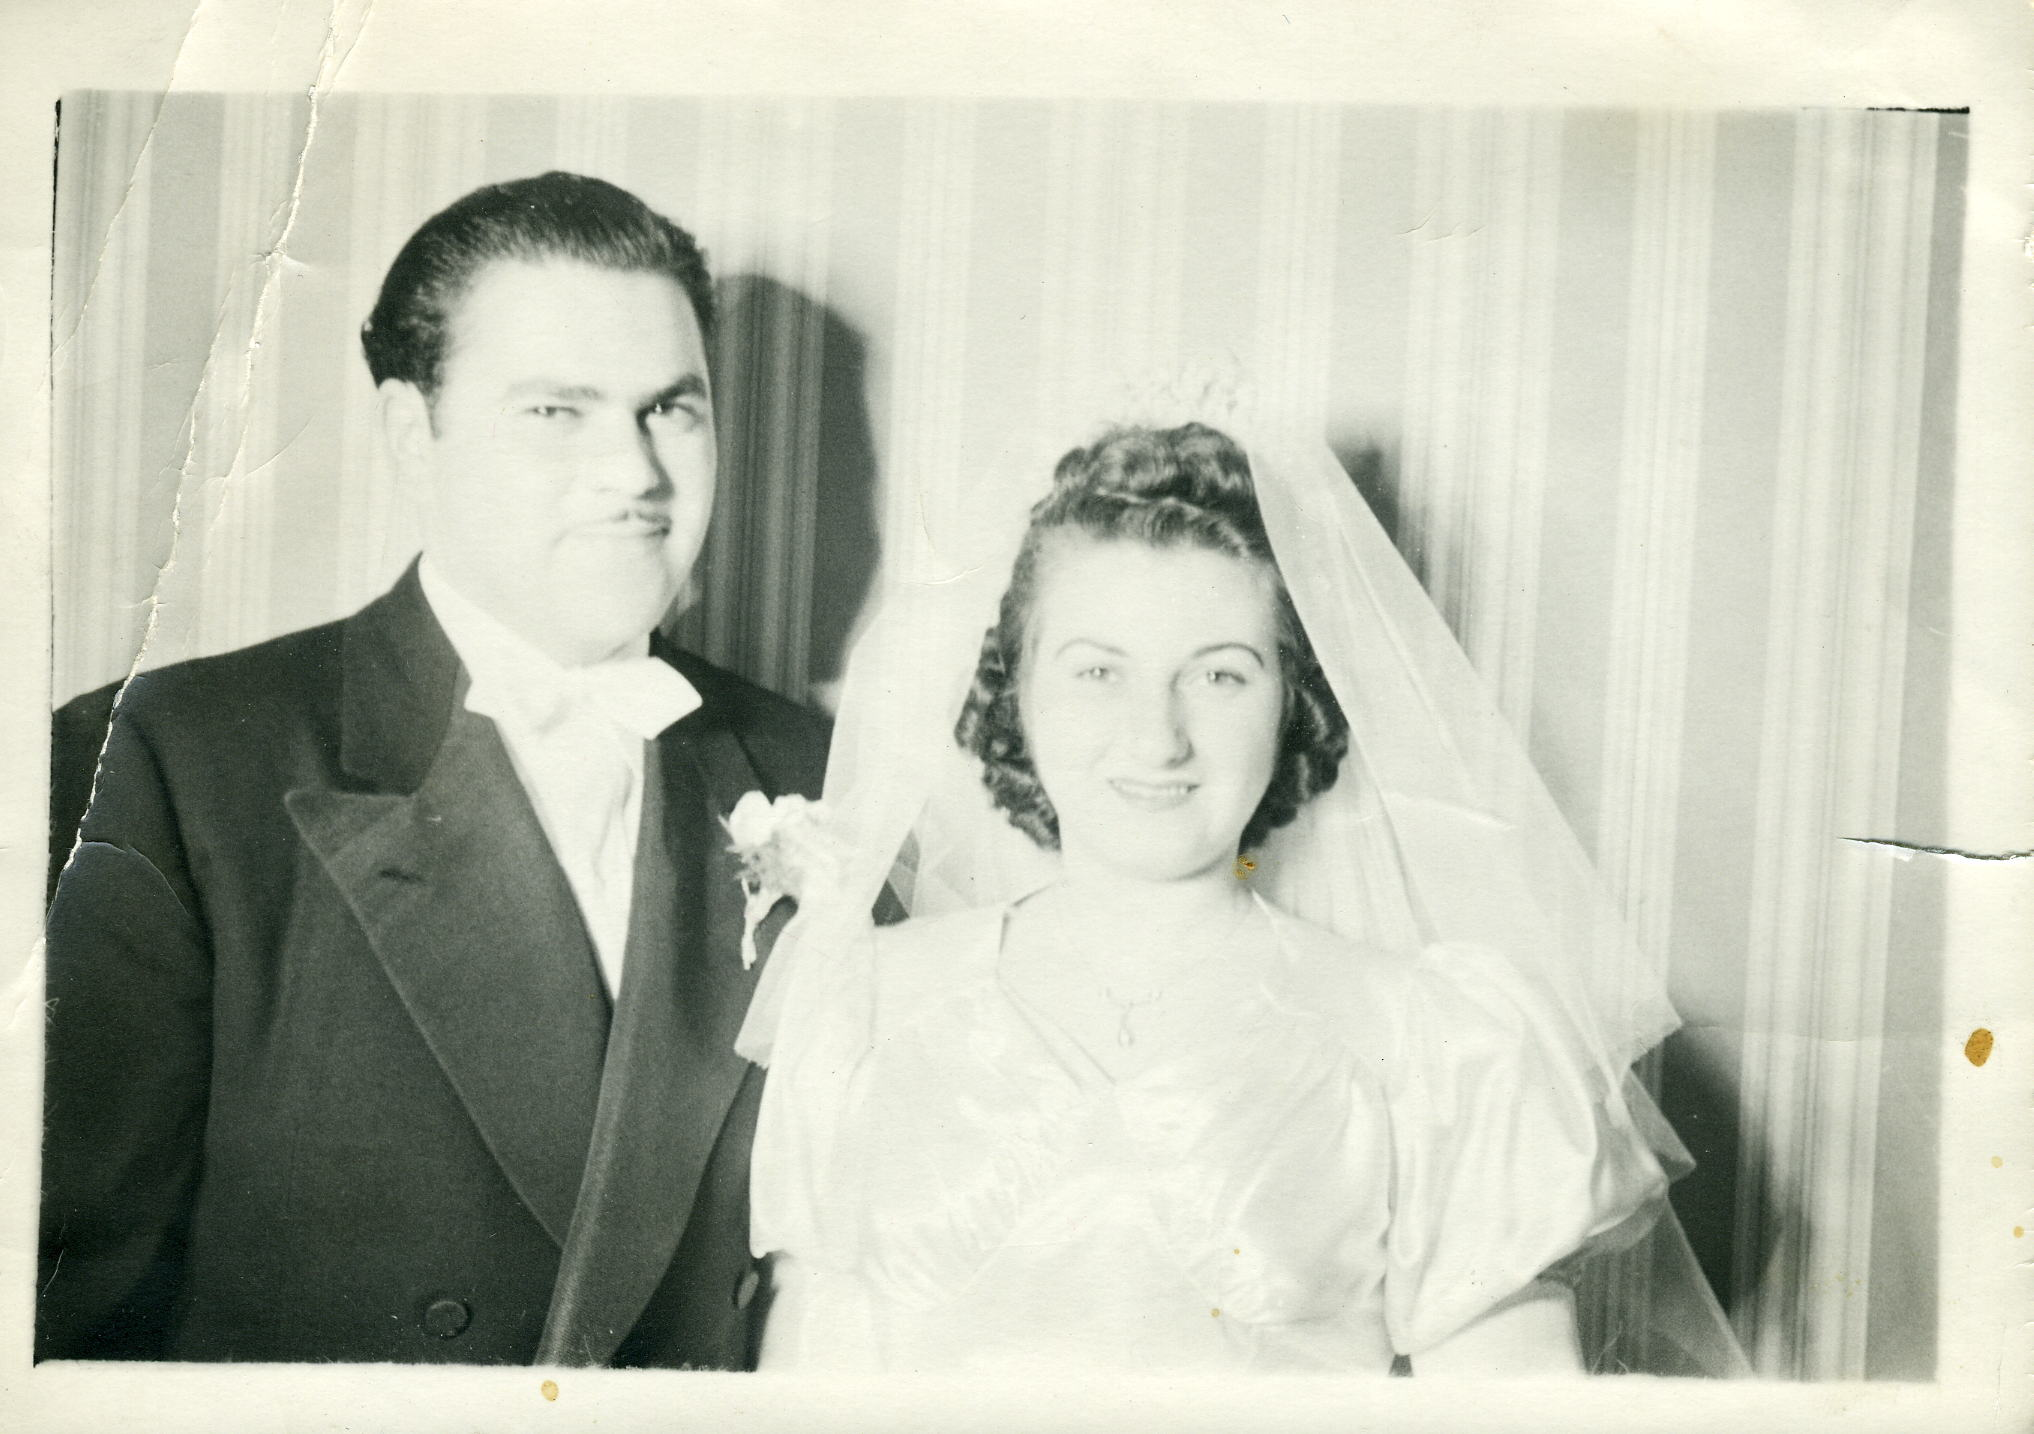 Arthur's son, Norman and his wife, Leona